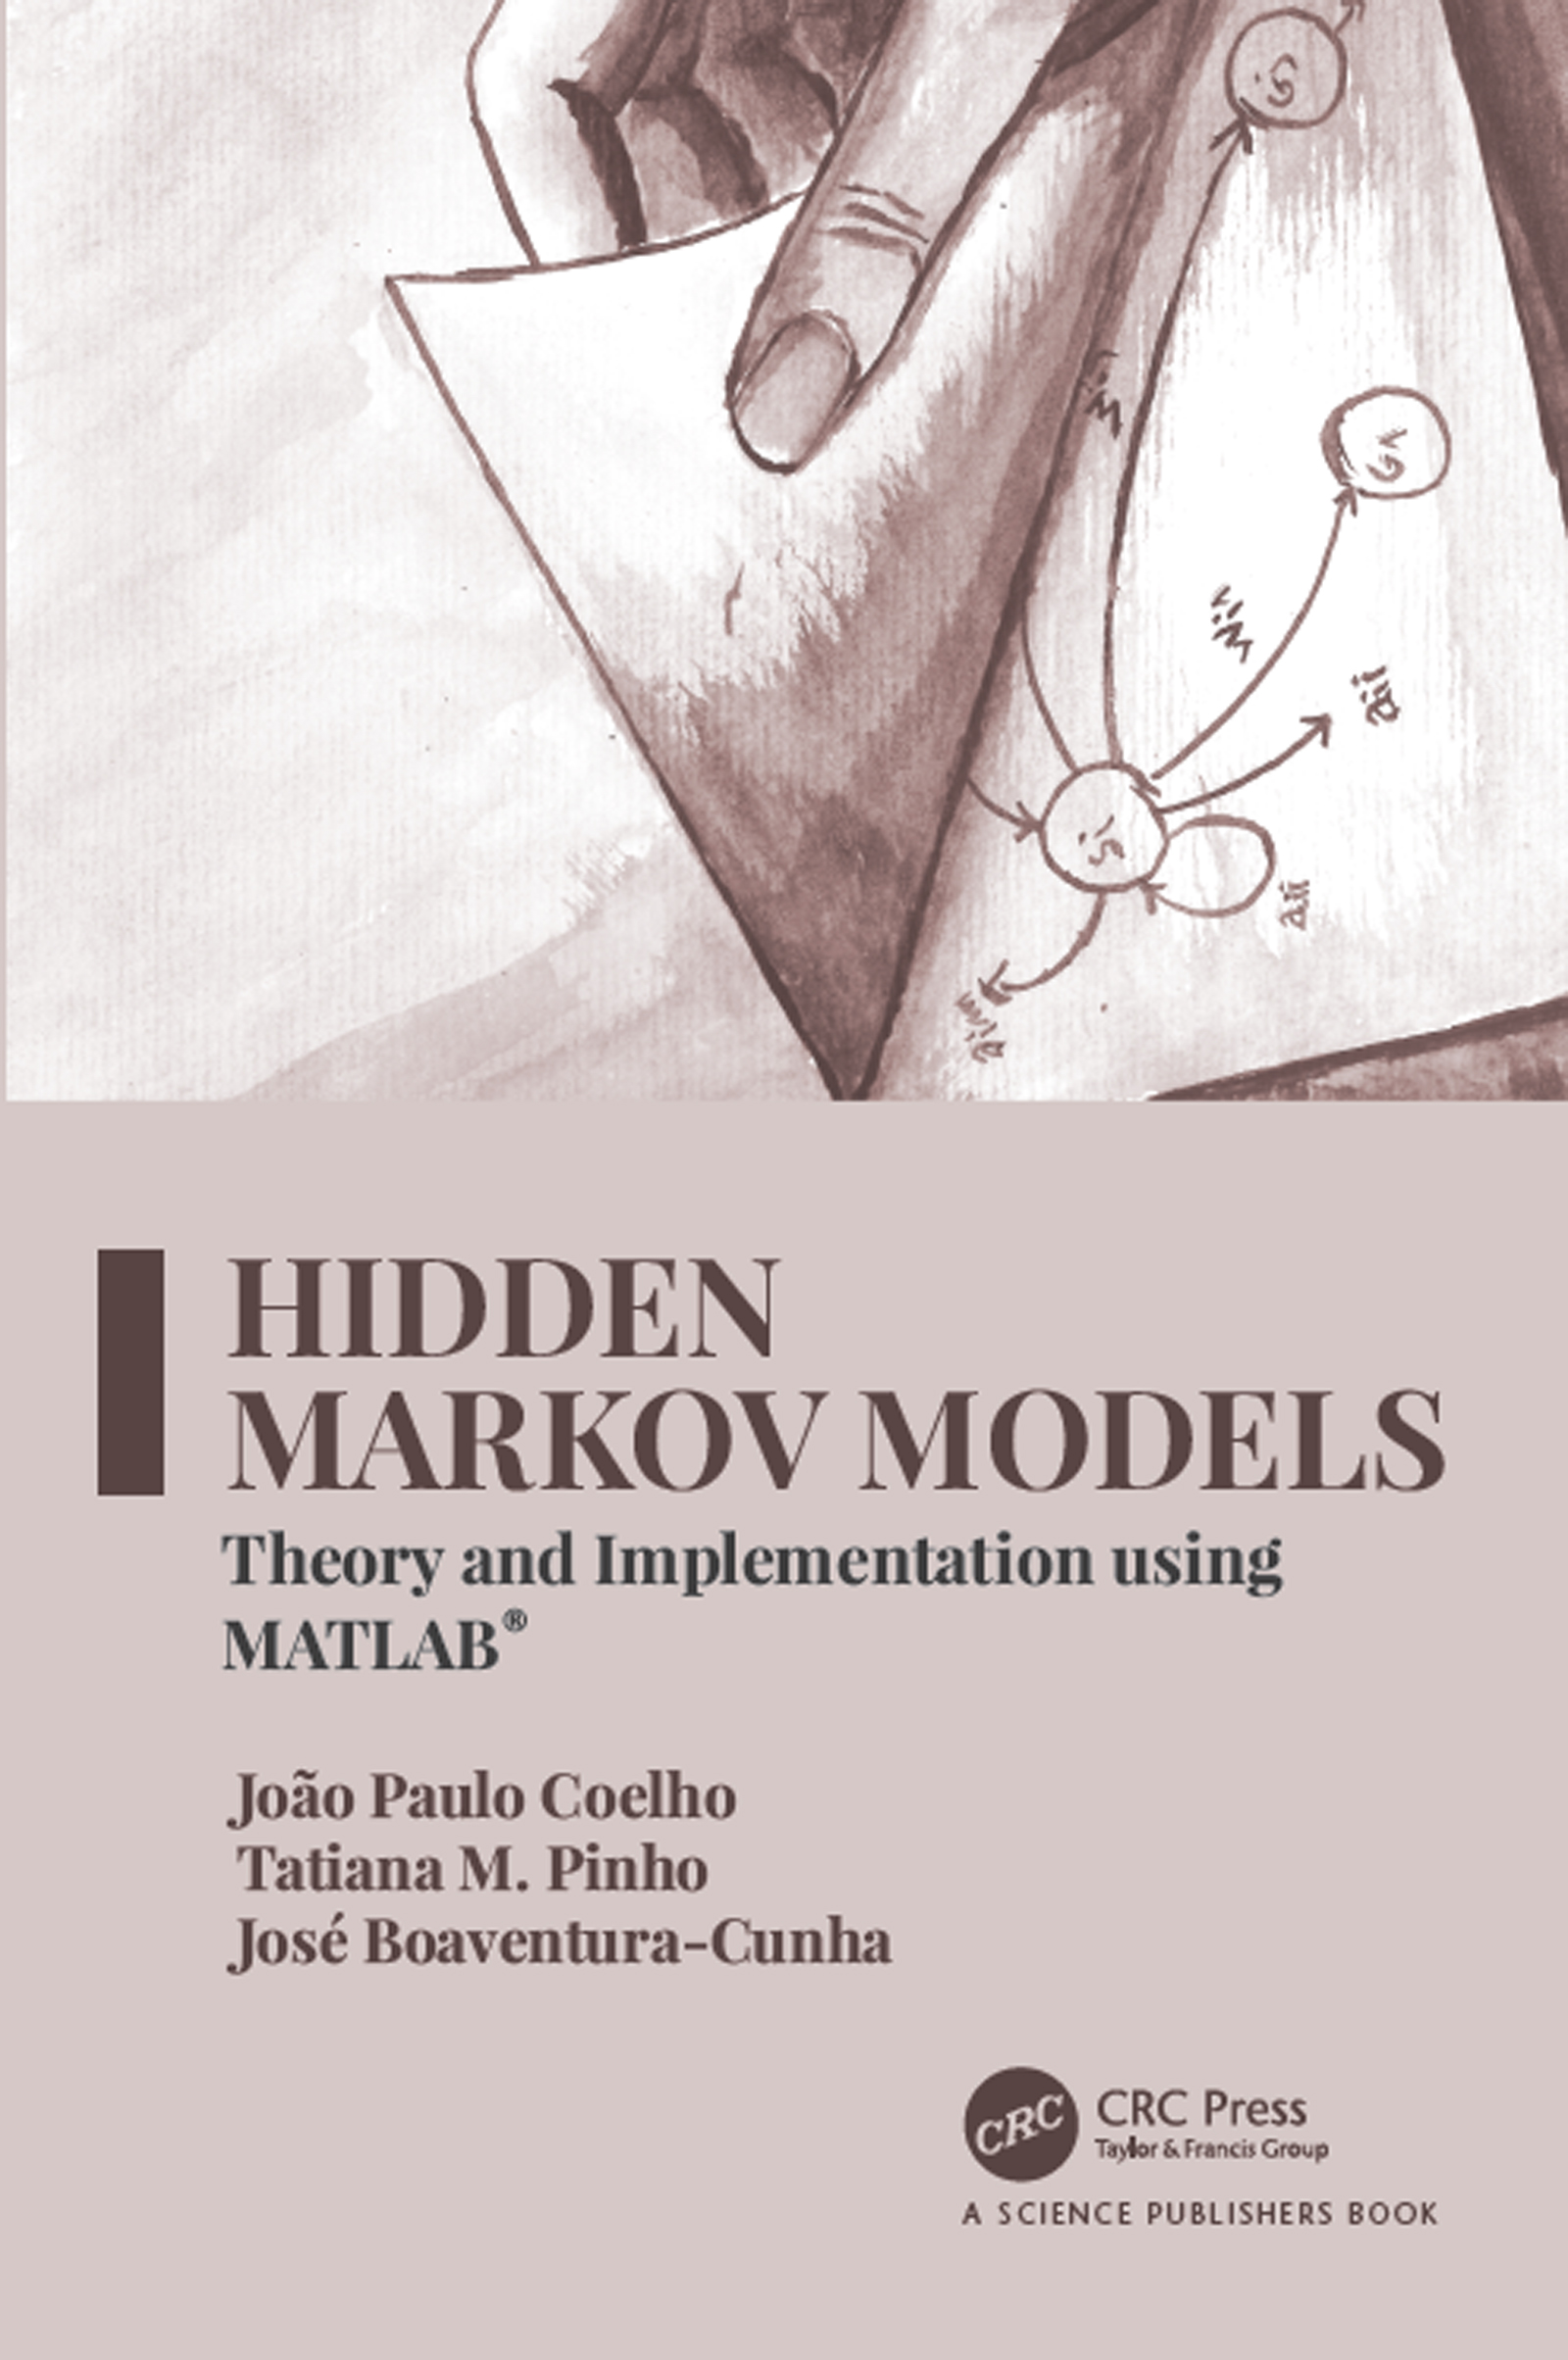 Hidden Markov Models: Theory and Implementation using MATLAB